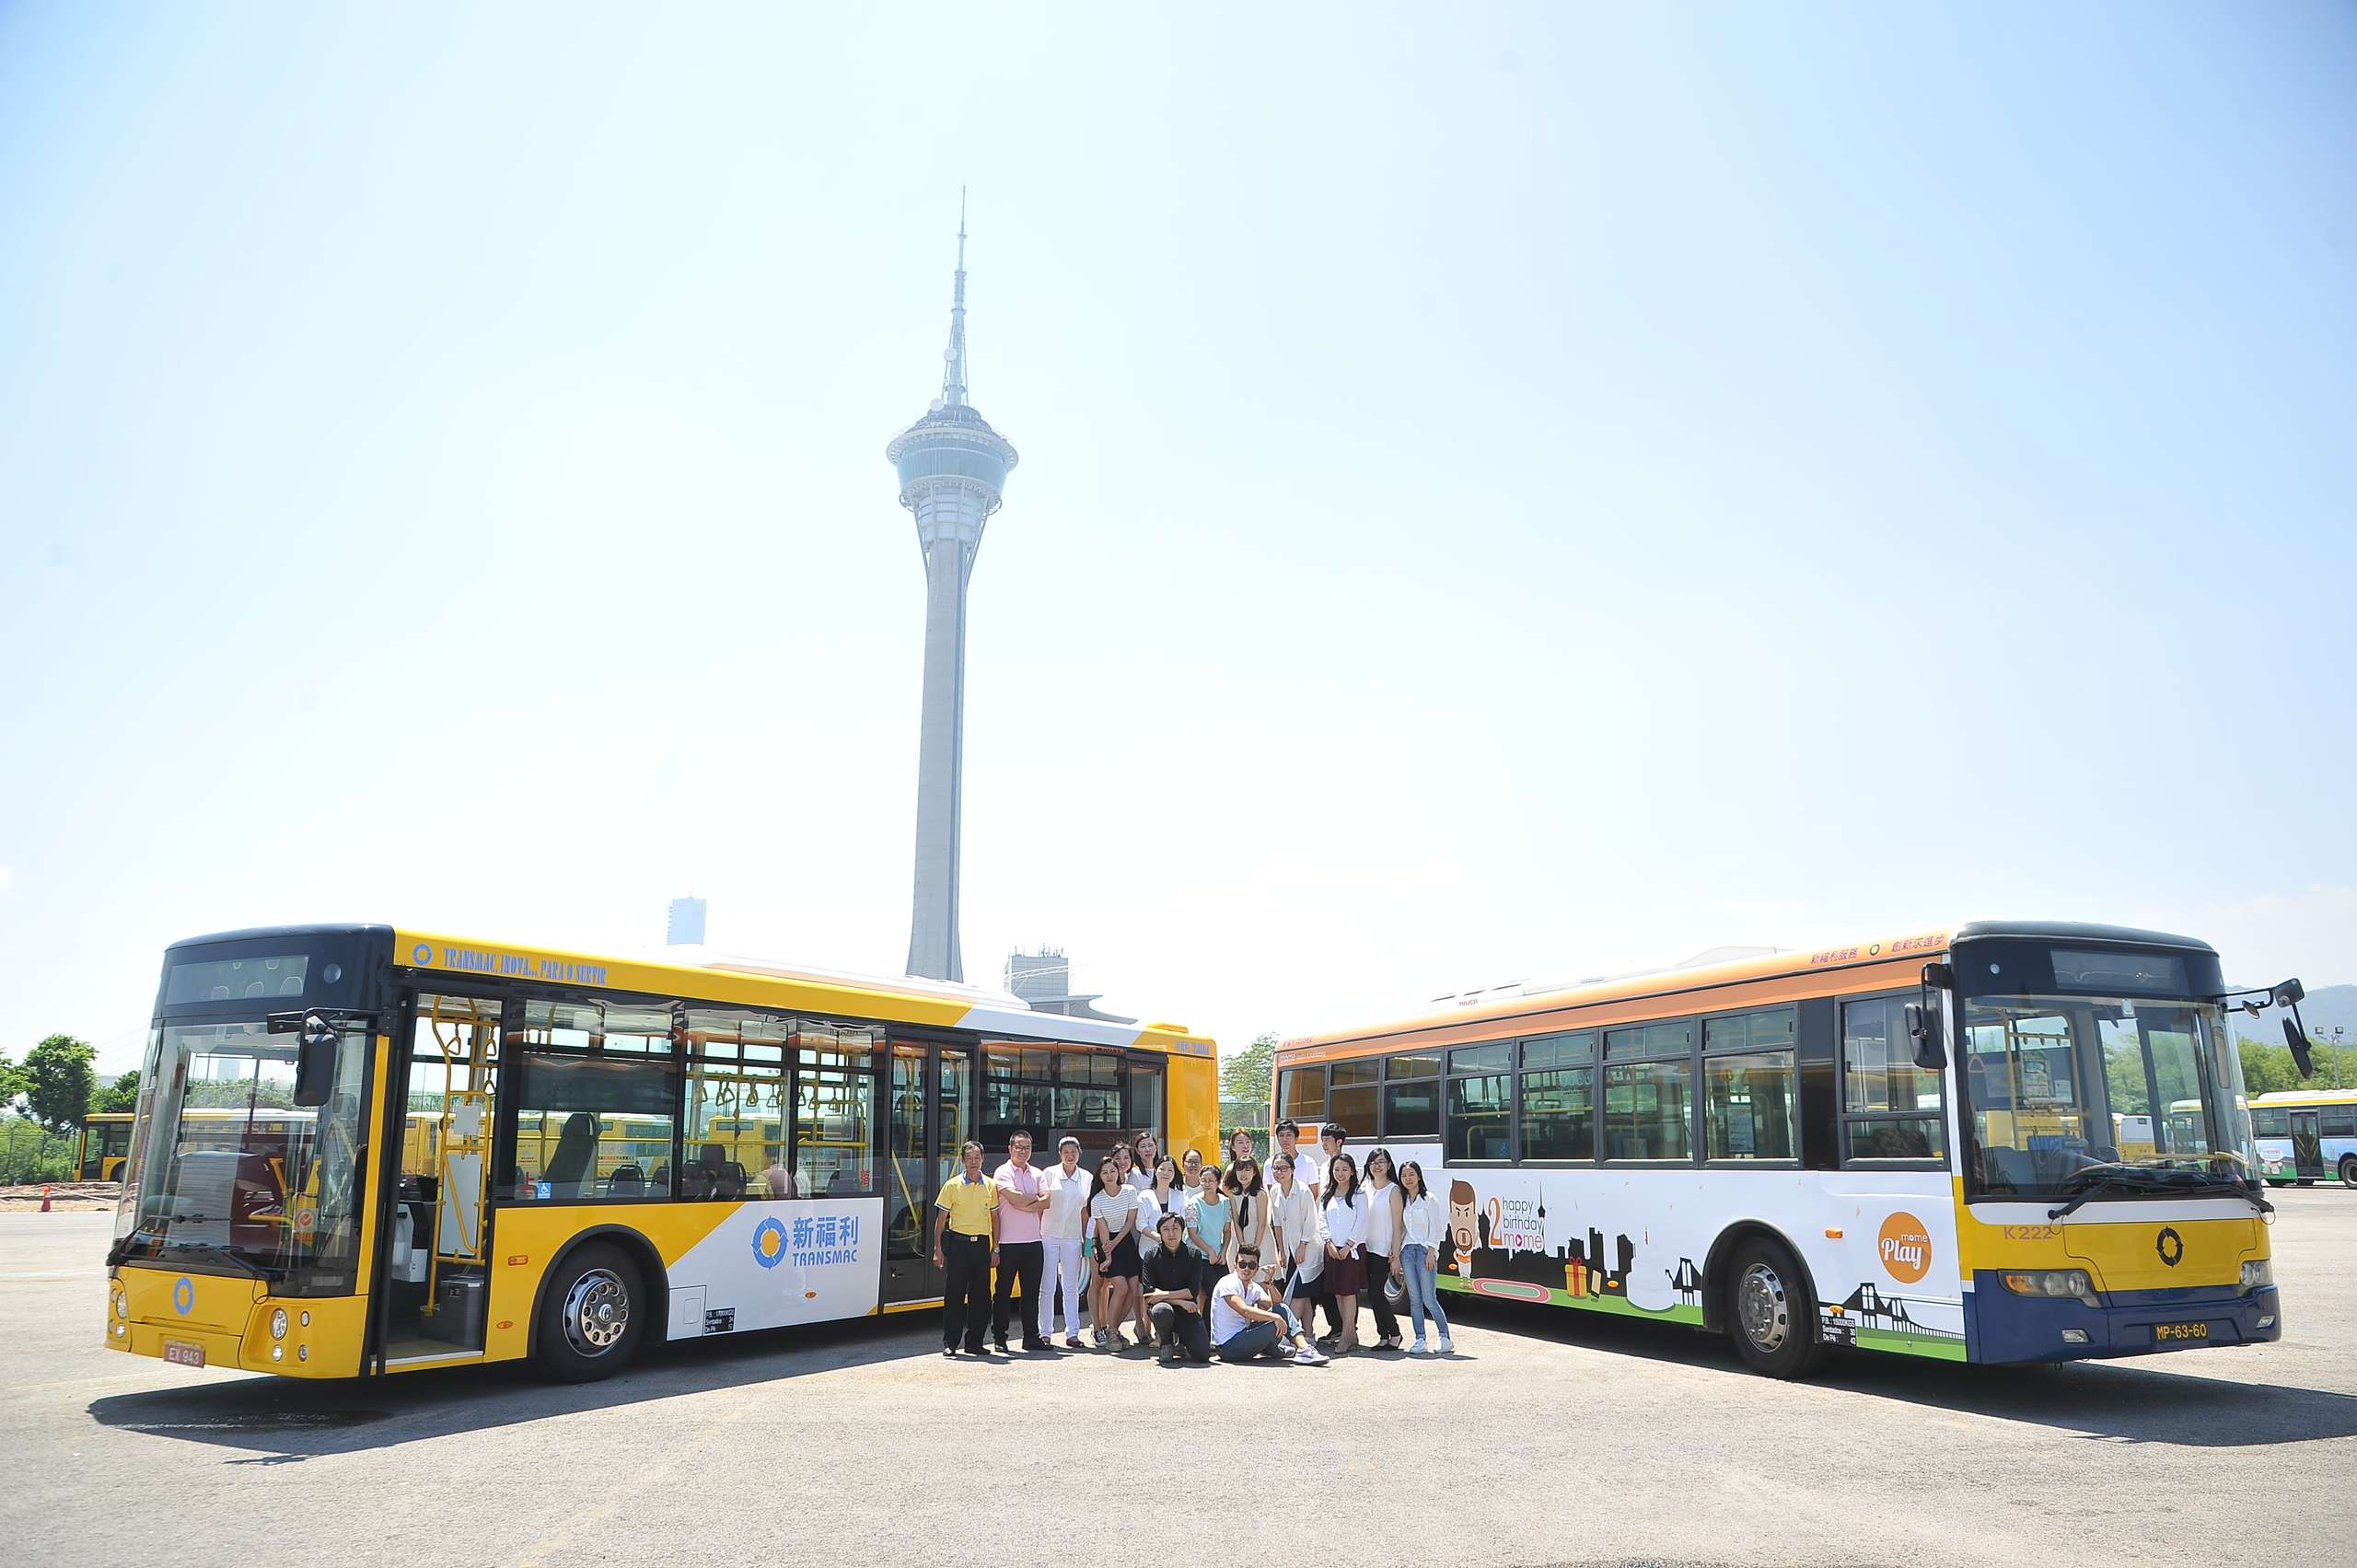 Group photo in front of two buses with Macau Tower in the back